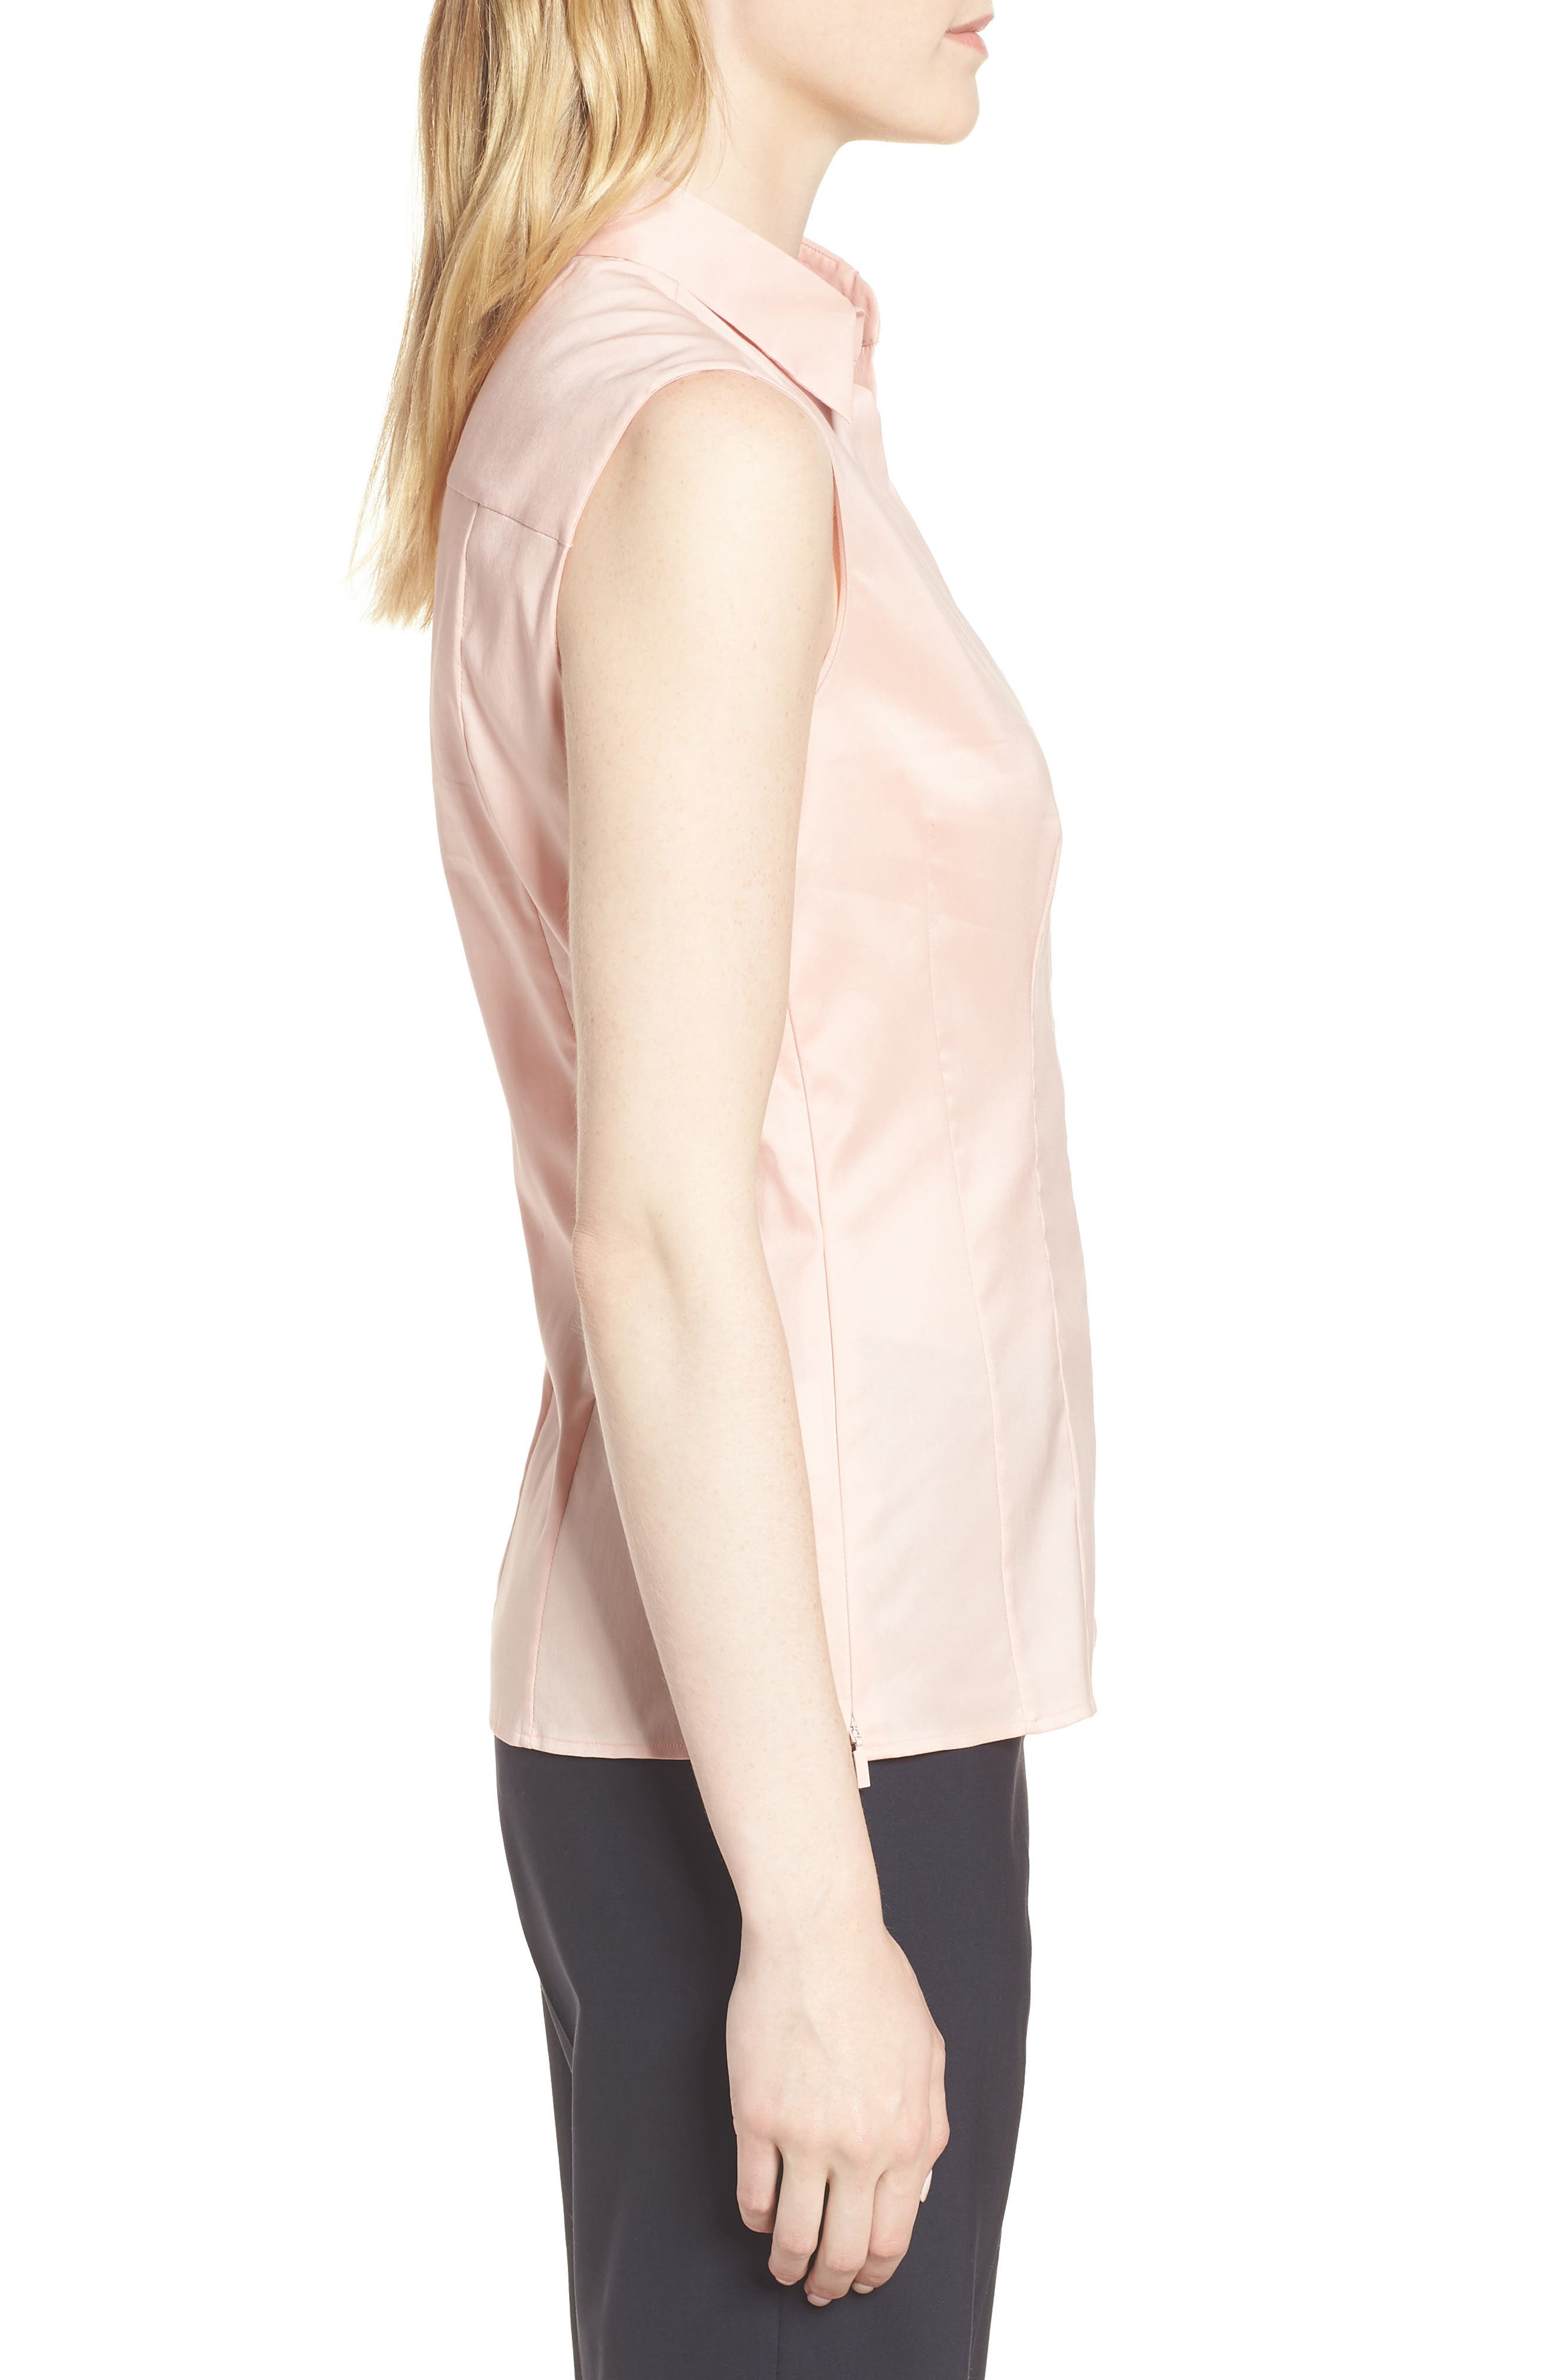 Bashiva Stretch Poplin Blouse,                             Alternate thumbnail 3, color,                             Blush